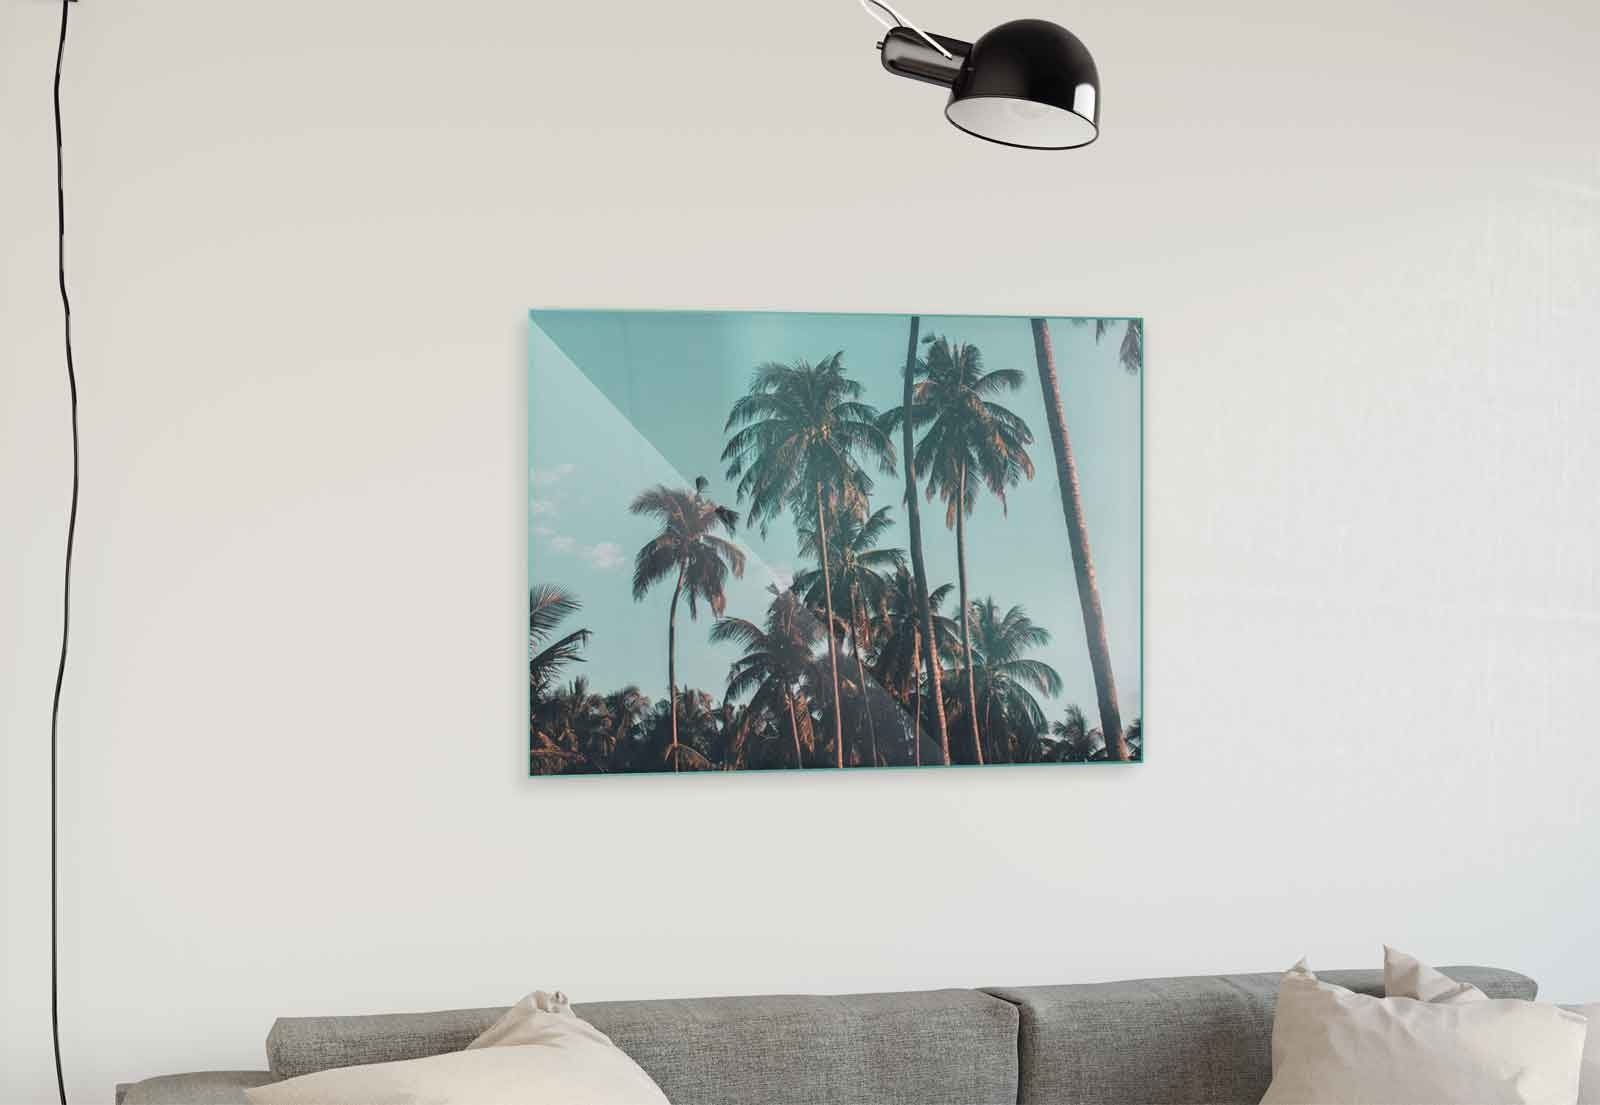 Best And Newest Nature Wall Art With Palms Blue Sky Nature Canvas & Glass Wall Art Pictures (Fw 1218) (View 11 of 15)